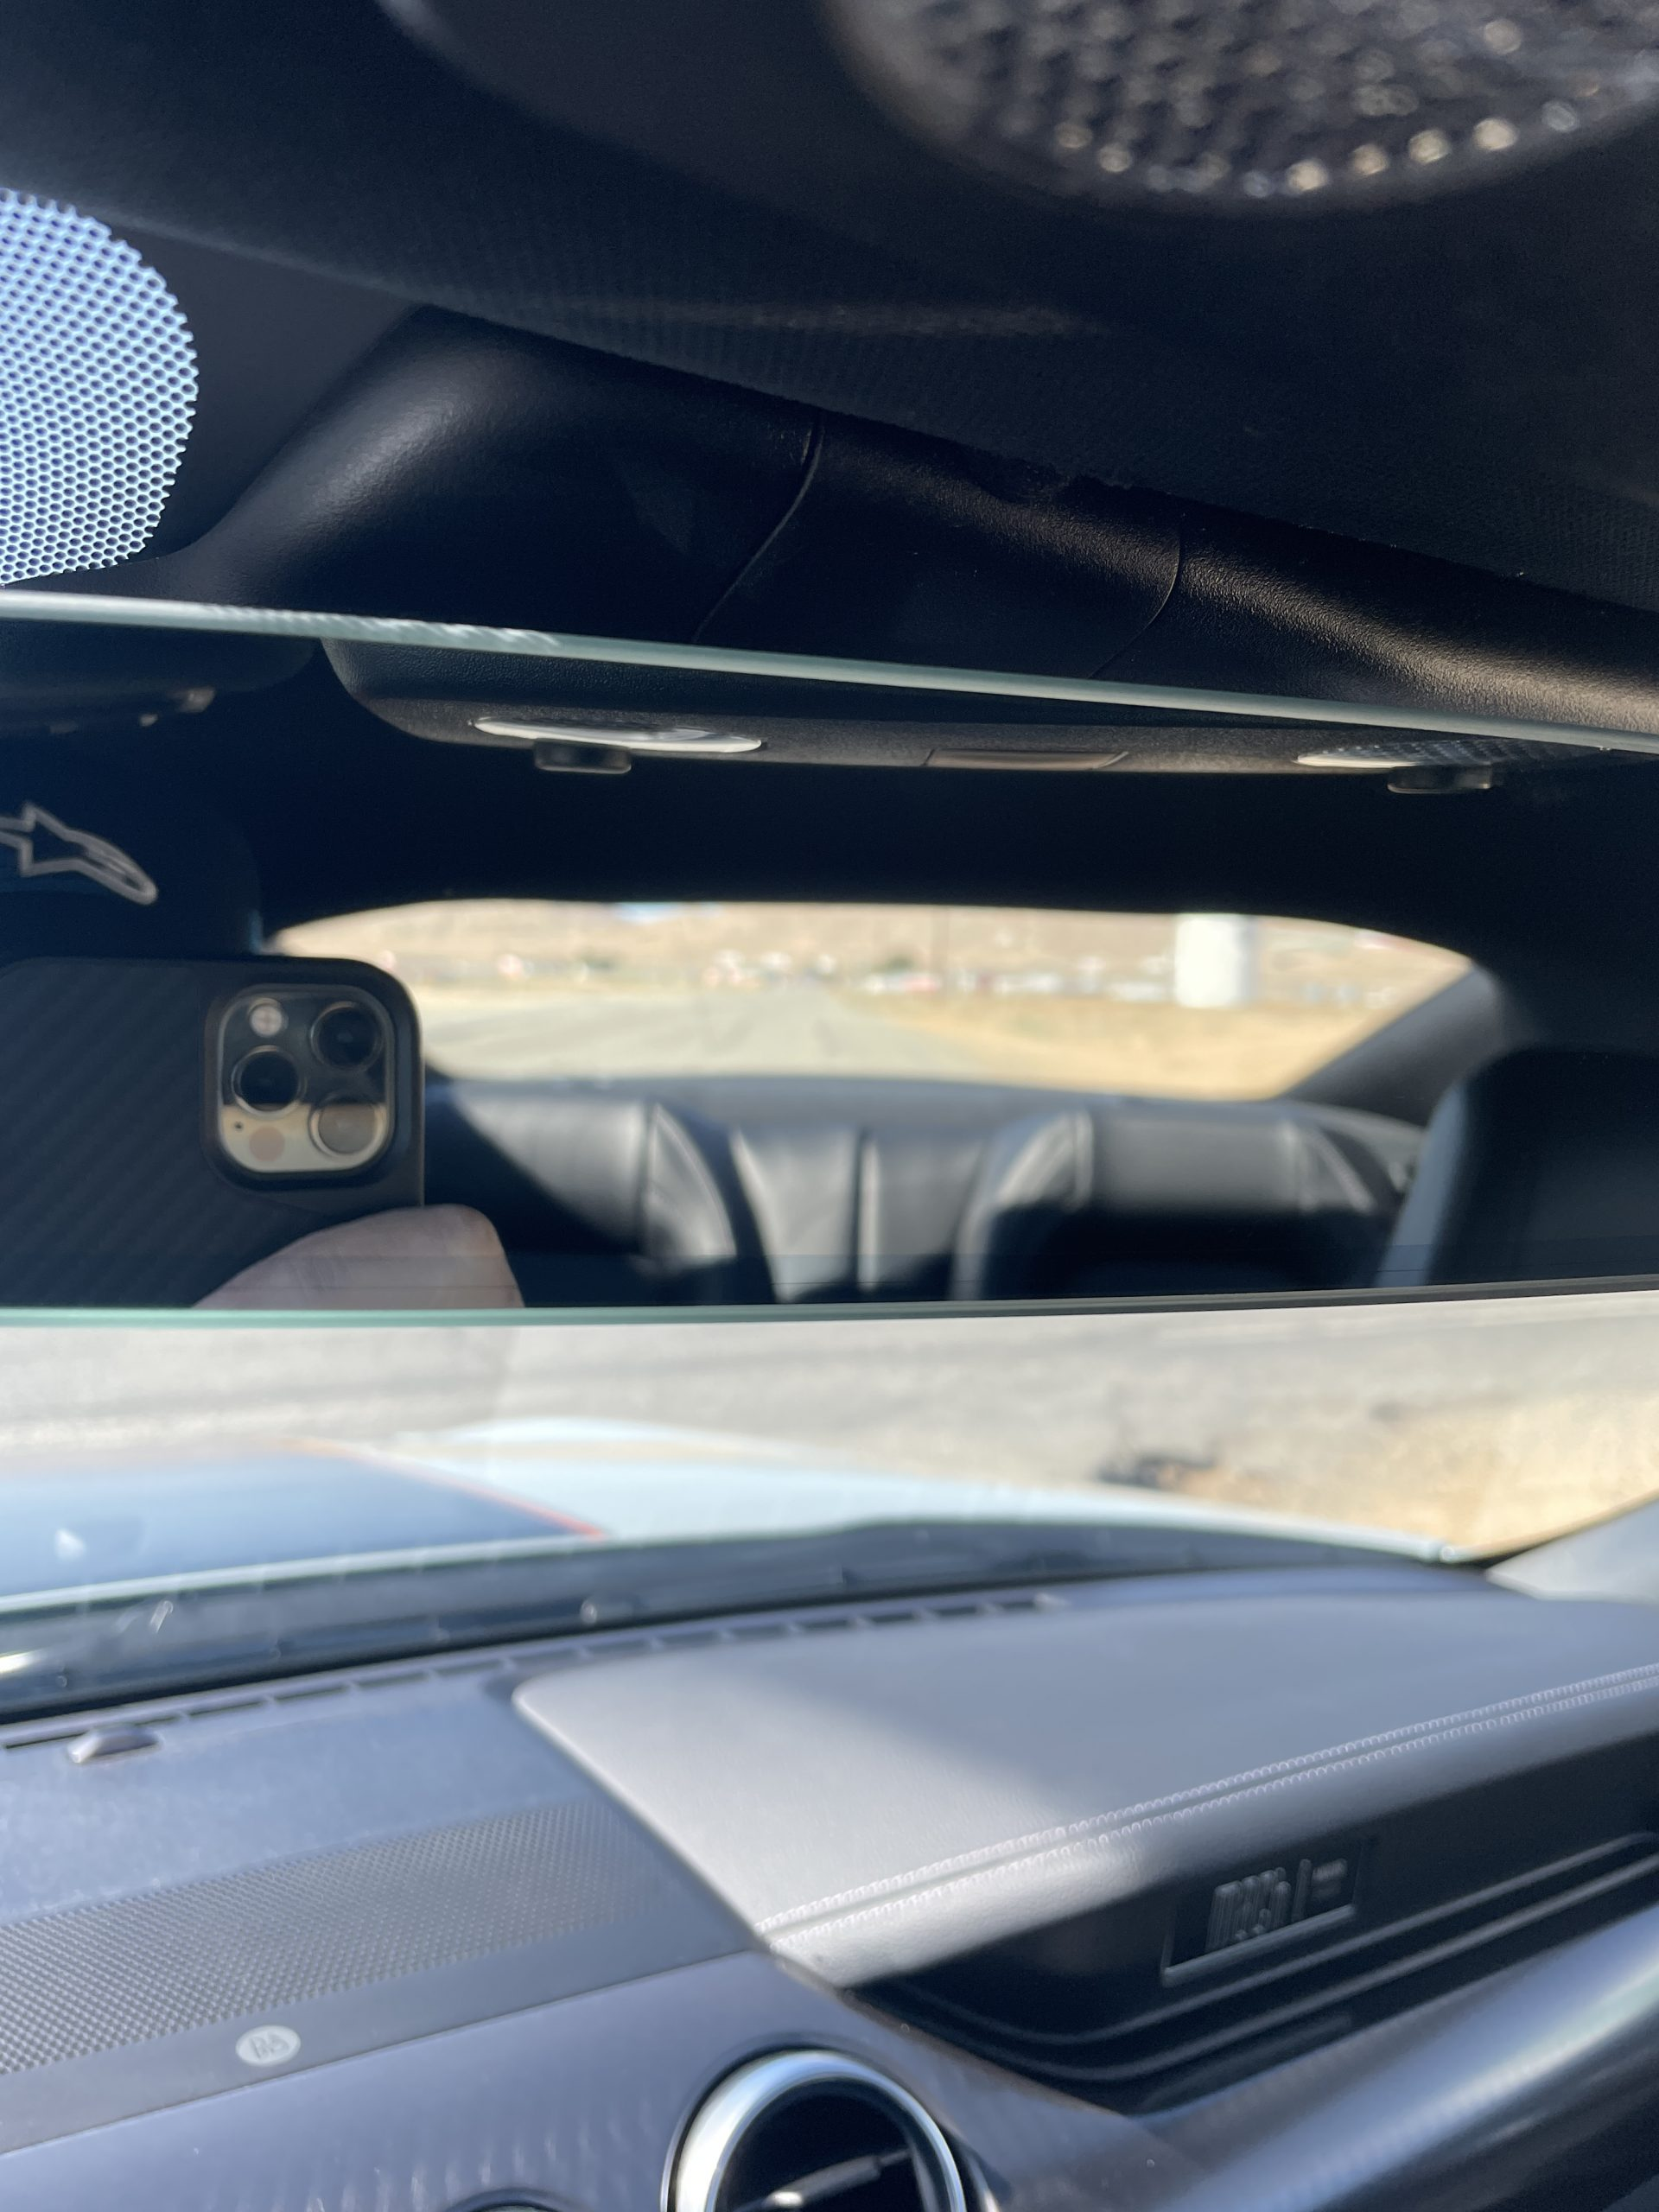 New Mustang Mach 1 interior rear view mirror vantage